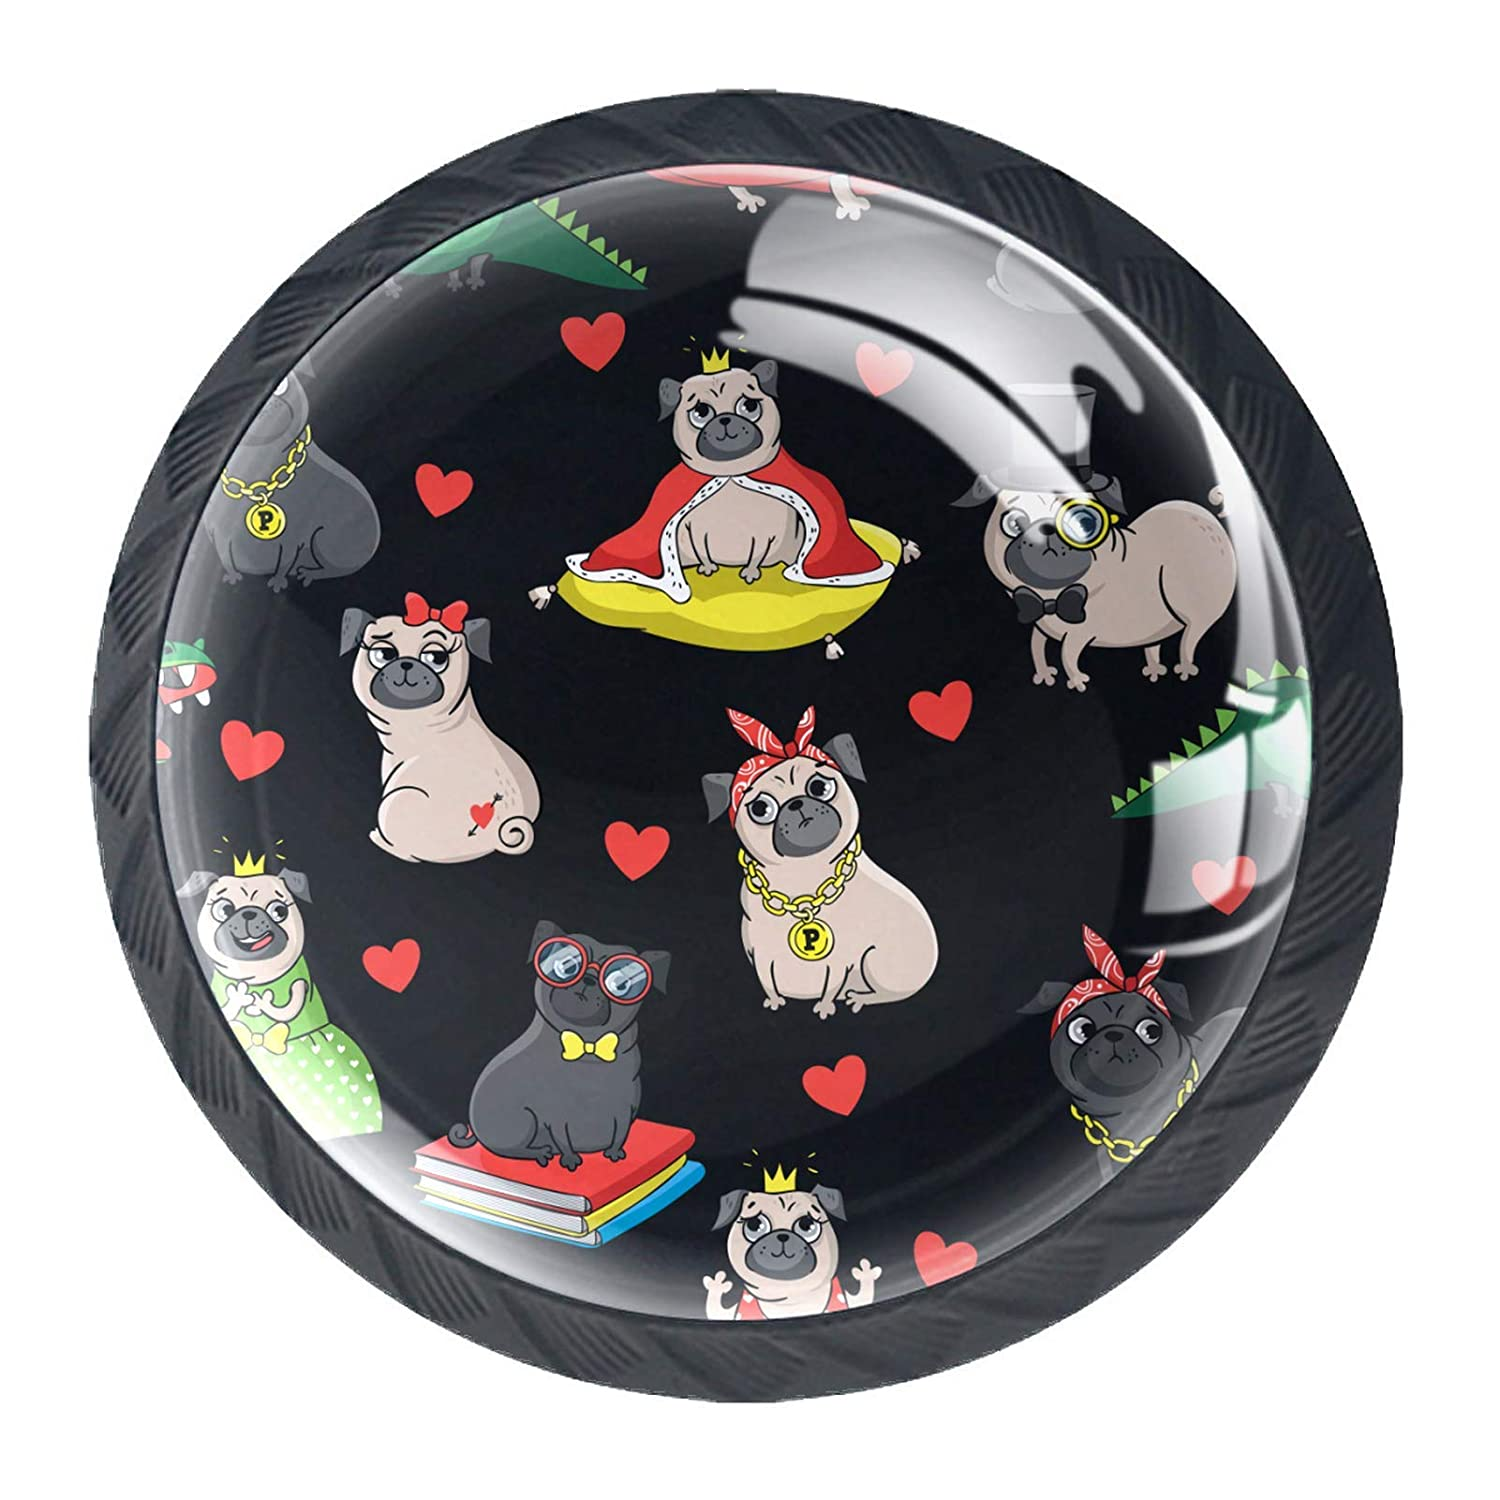 Drawer Max 53% OFF Knobs Baby Funny Pug Dress Beauty products Pulls Black Dog Handles